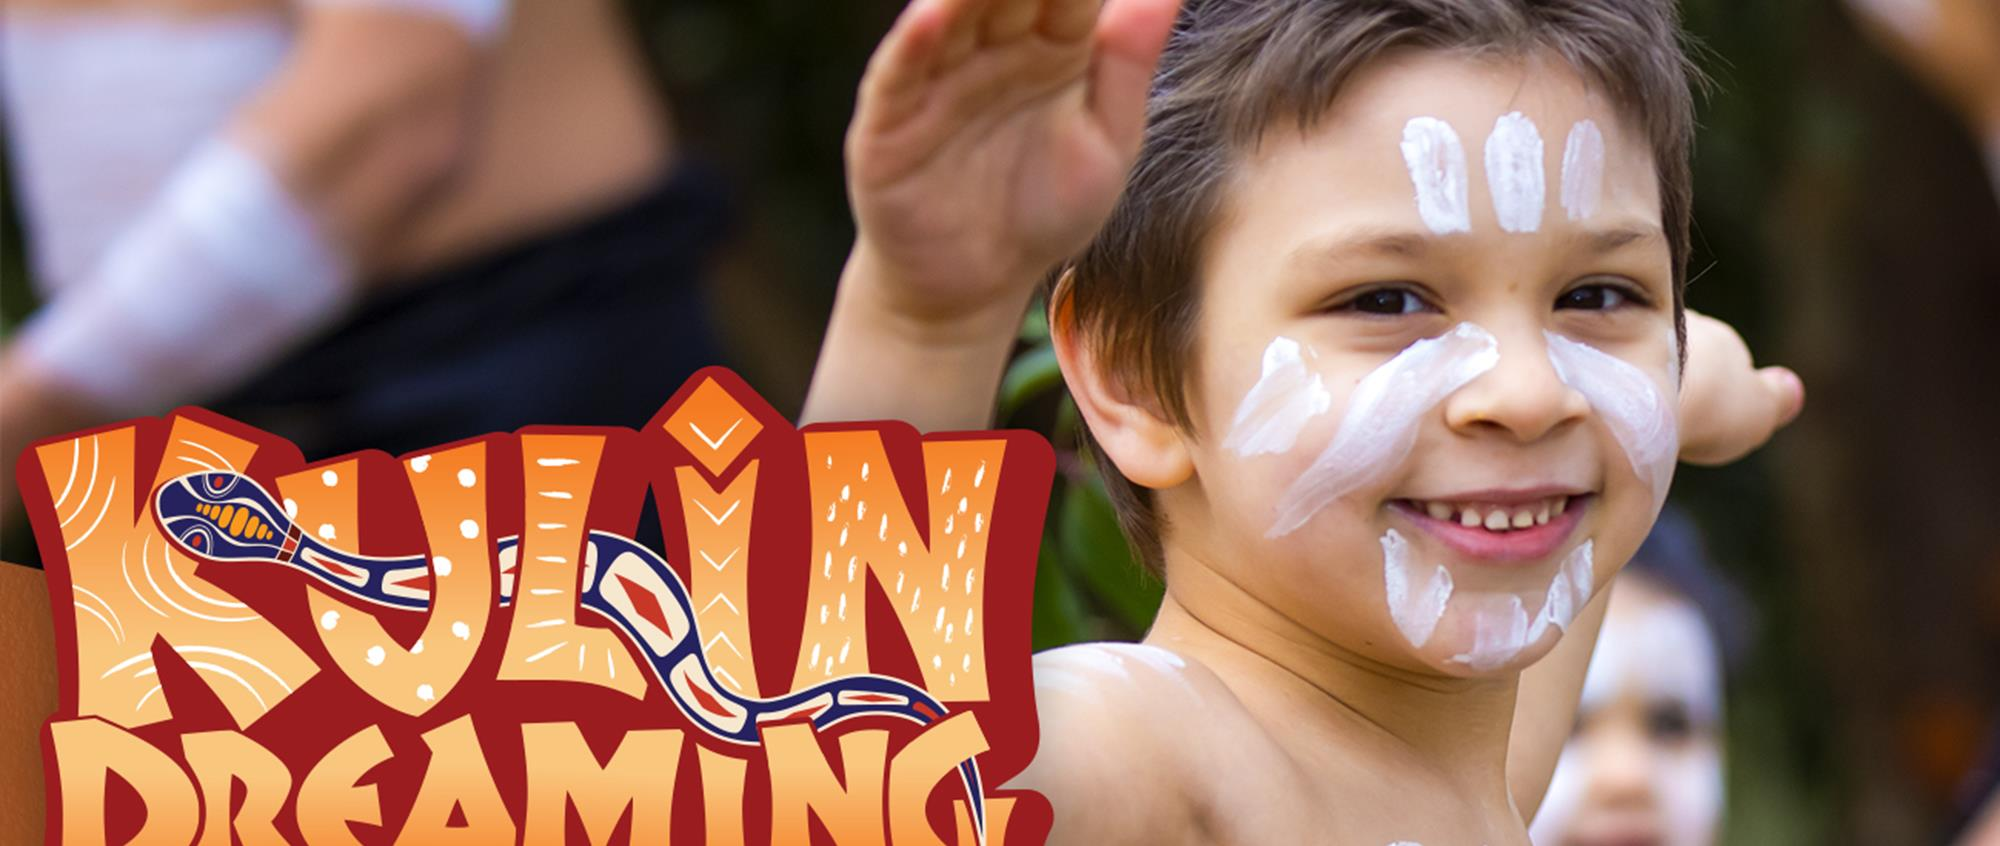 Kulin Dreaming campaign banner. Child dancing with white face paint.